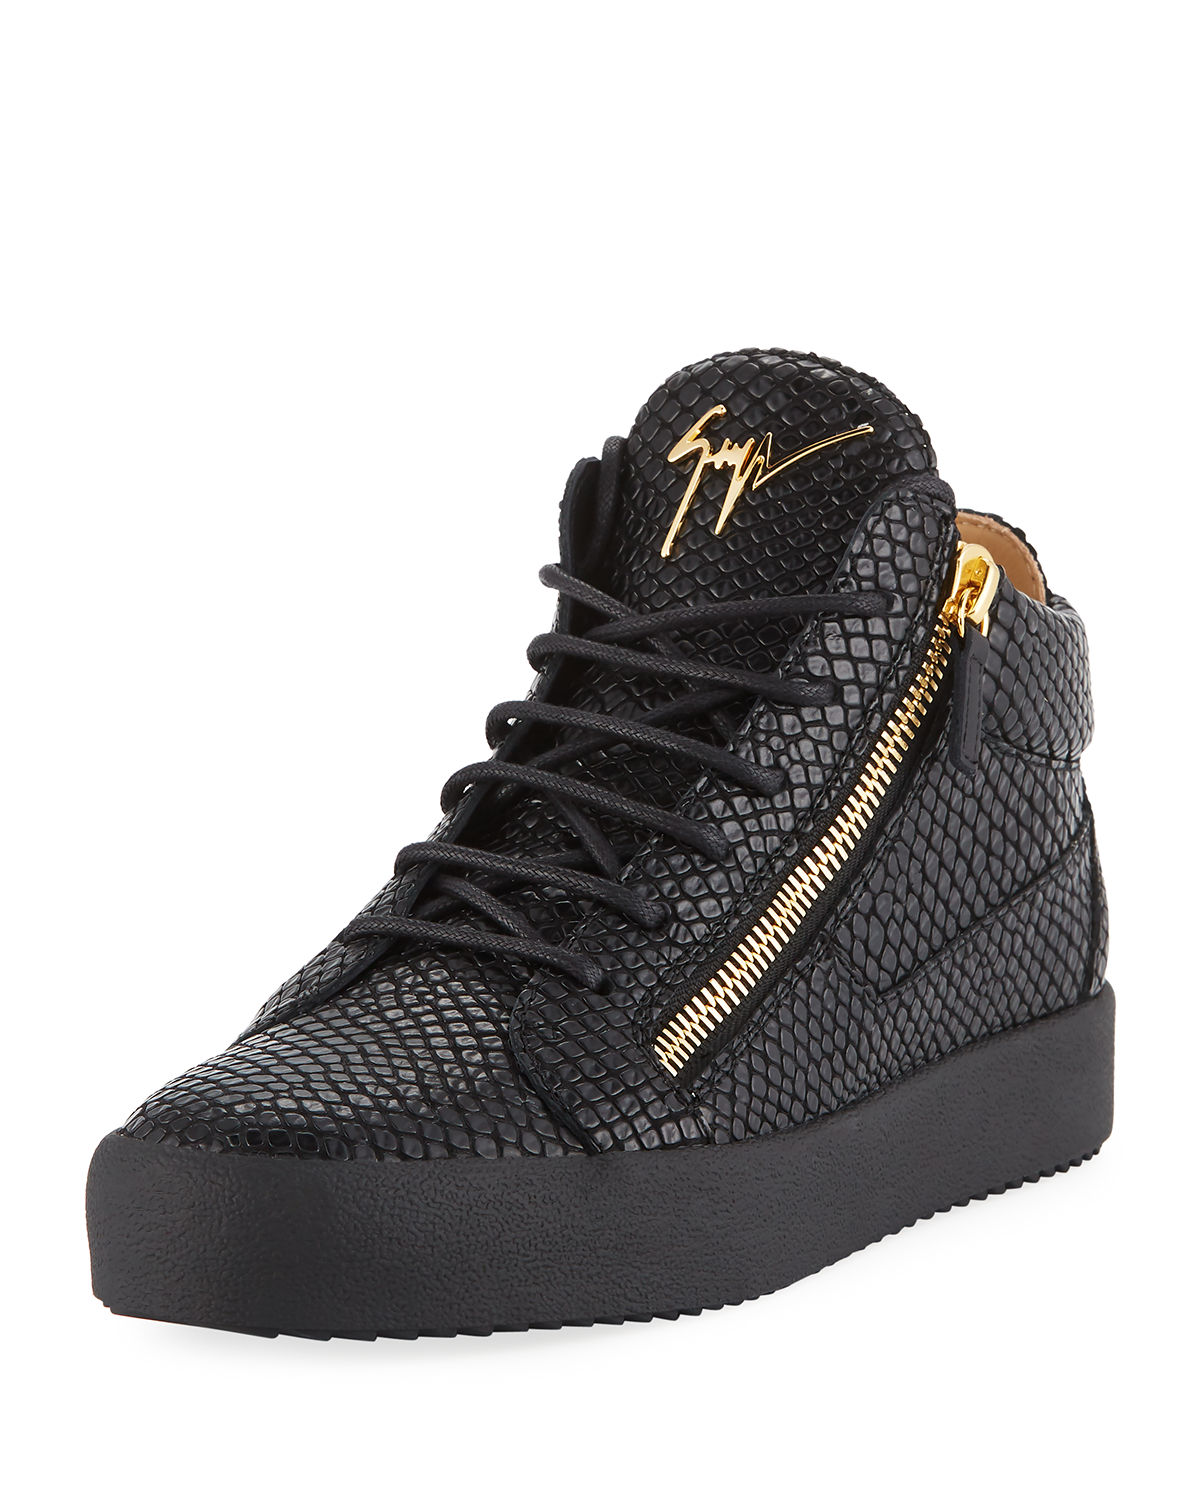 find workmanship novel style new styles Men's Embossed Leather Mid-Top Sneakers